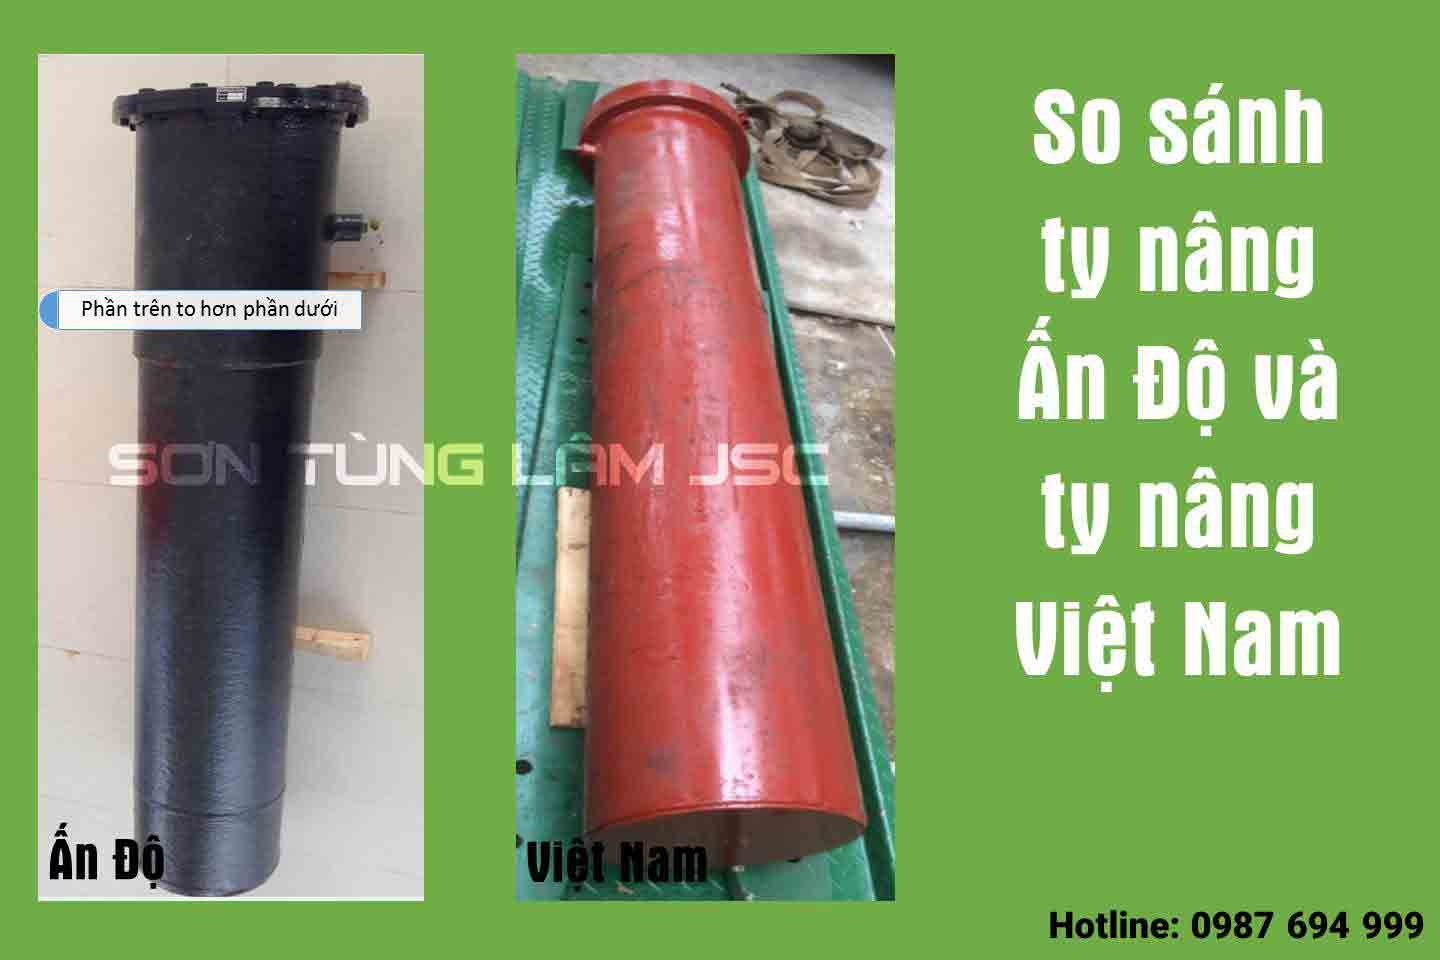 So-sanh-ty-ben-cau-nang-Viet-Nam-An-Do